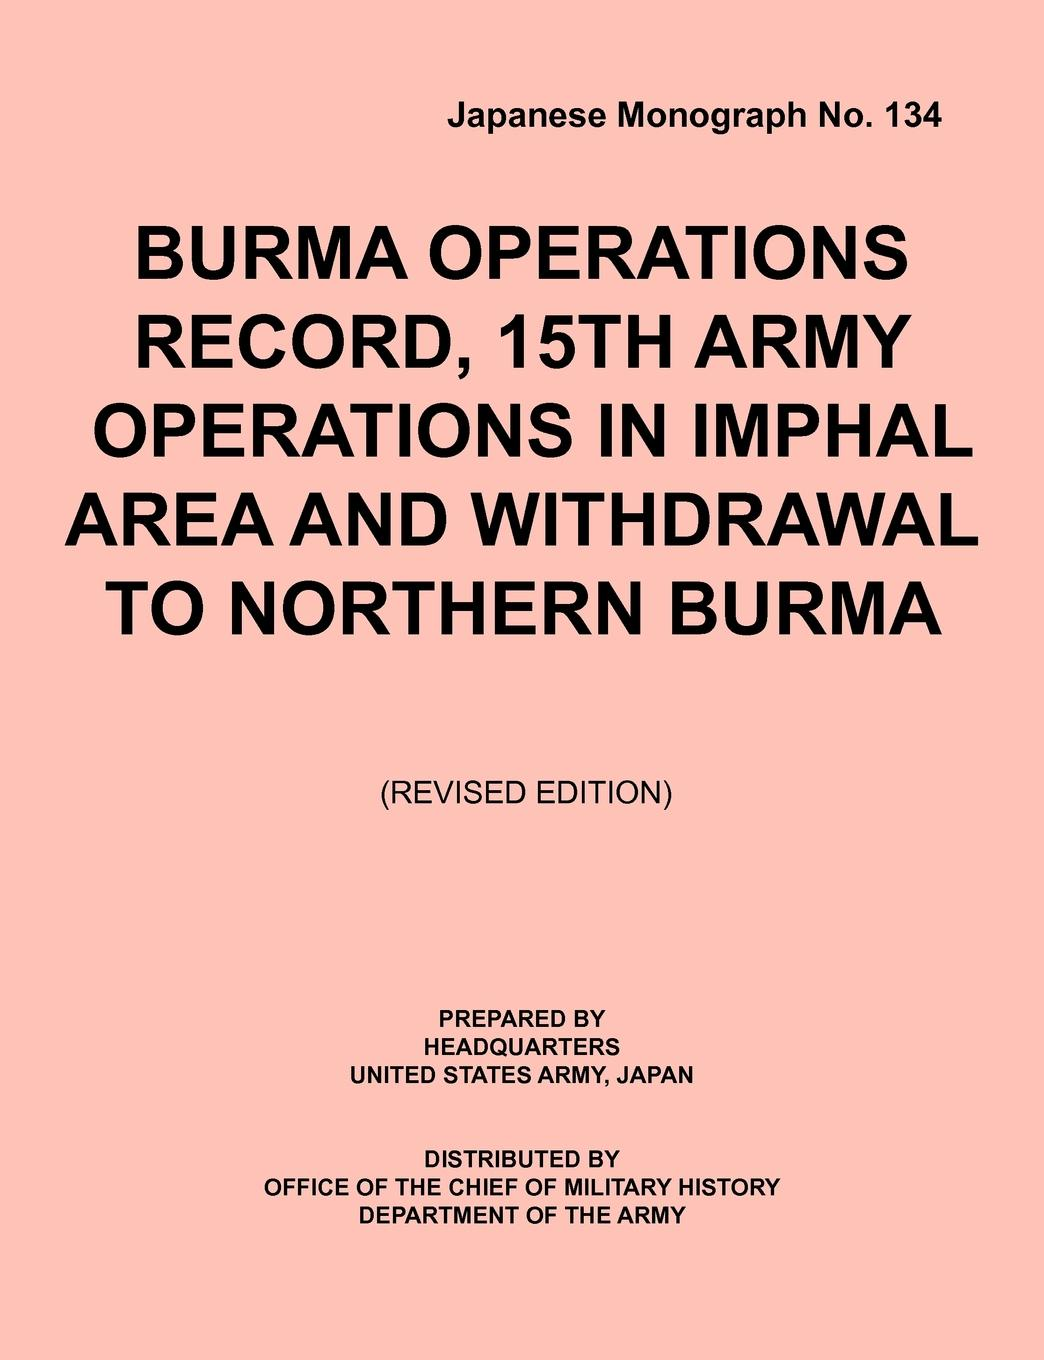 UnitedStatesArmyJa Headquarters Burma.Operations.Record. .15th.Army.Operations.in.Imphal.Area.and.Withdrawal.to.Northern.Burma (Japanese Monograph, no. 134) somenath halder and malay mukhopadhyay changing livelihood of snake charmer in eastern india